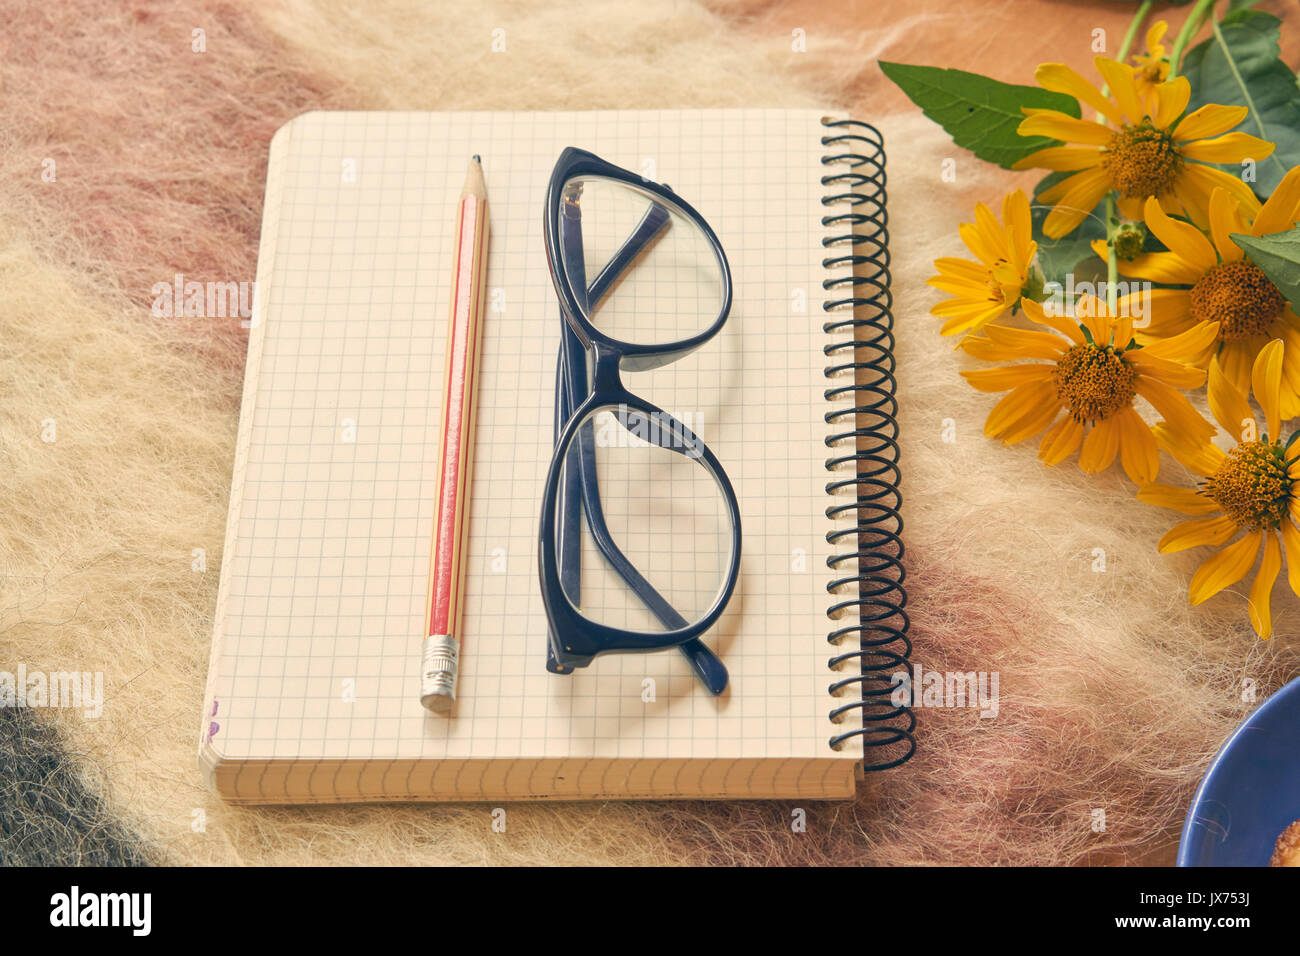 Paper notebook with pen and glasses on woolen plaid with yellow paper notebook with pen and glasses on woolen plaid with yellow flowers aside cozy relax home environment to calm and make some notes closeup low an mightylinksfo